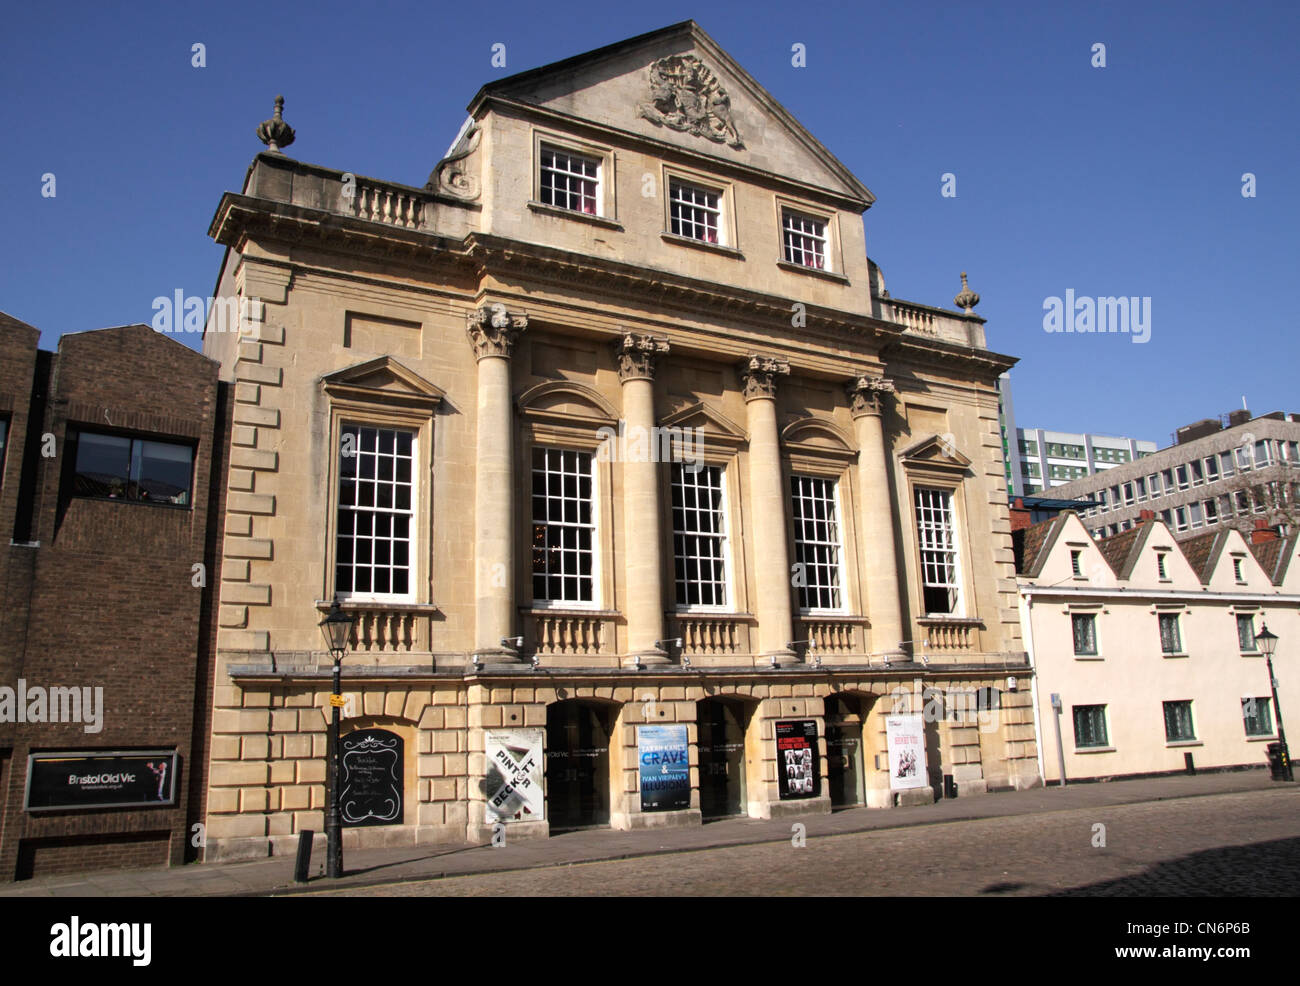 Theatre royal king street bristol home of bristol old vic for Classic house bristol